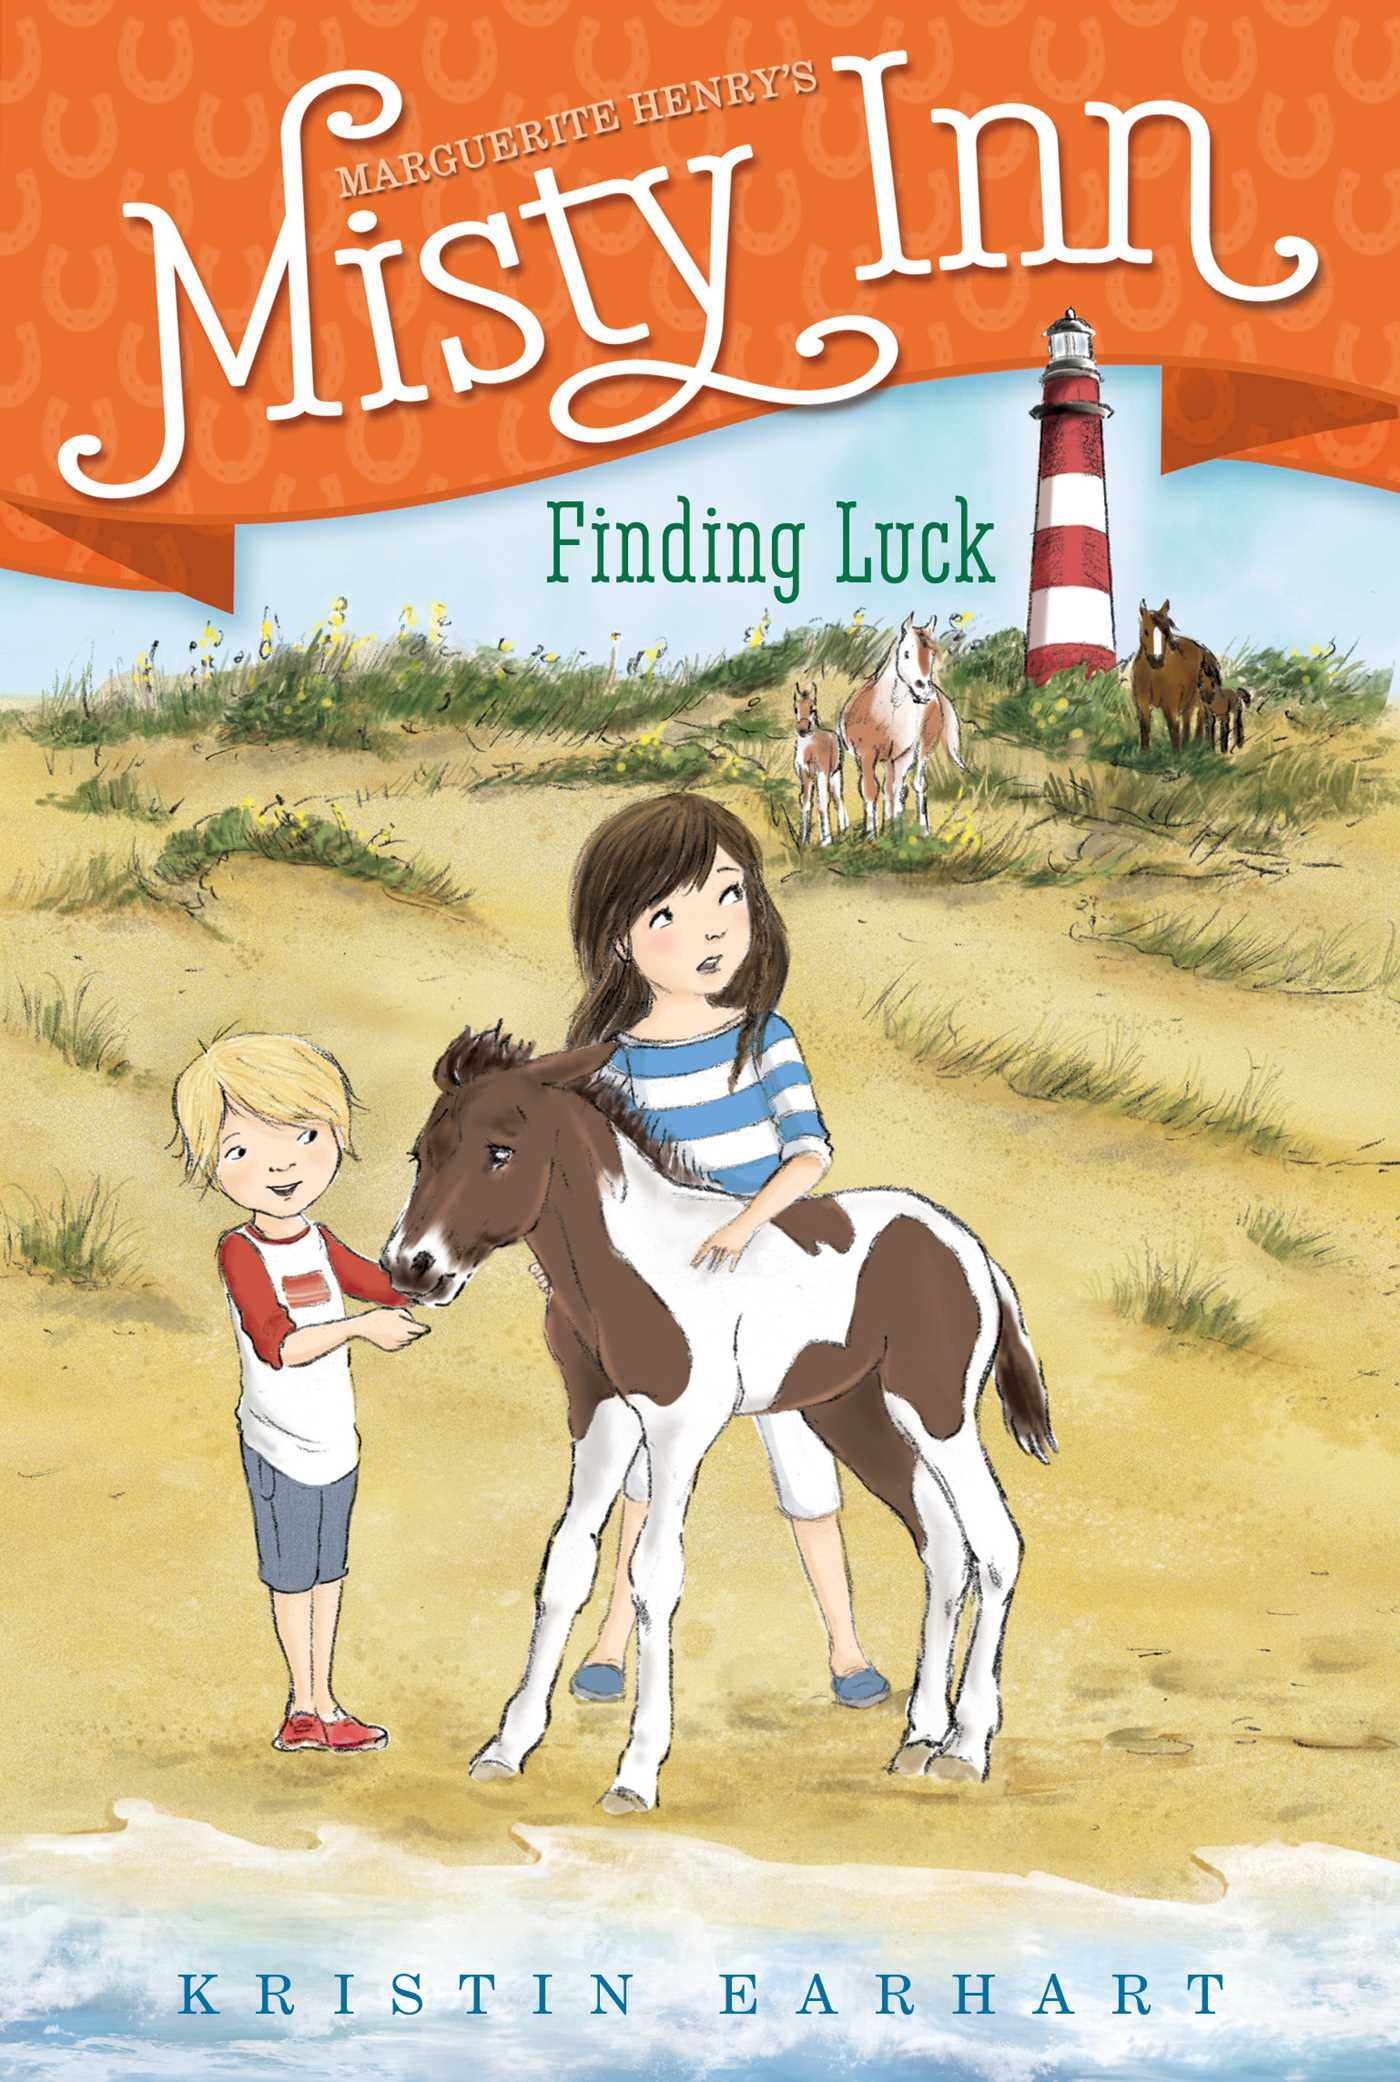 Finding Luck - The Dunlap's bed and breakfast is finally ready for the grand opening—or is it?—in this fourth book of a chapter book series inspired by Marguerite Henry's Misty of Chincoteague.It's time for the grand opening of Misty's Inn and Willa and Ben have been on their best behavior helping their parents get everything in tip-top shape! But they're tired of being up to their ears in lumpy mattresses and dust bunnies. Willa and Ben would much rather be helping their Grandma Edna reunite a foal with its missing mother. But as one disaster after another keeps happening at the Inn, the Dunlaps begin to worry that maybe running a bed and breakfast wasn't such a great idea after all. Will the Dunlaps be able to get everything ready in time, or will their dreams of running a successful inn disappear like the horse they're trying to save?